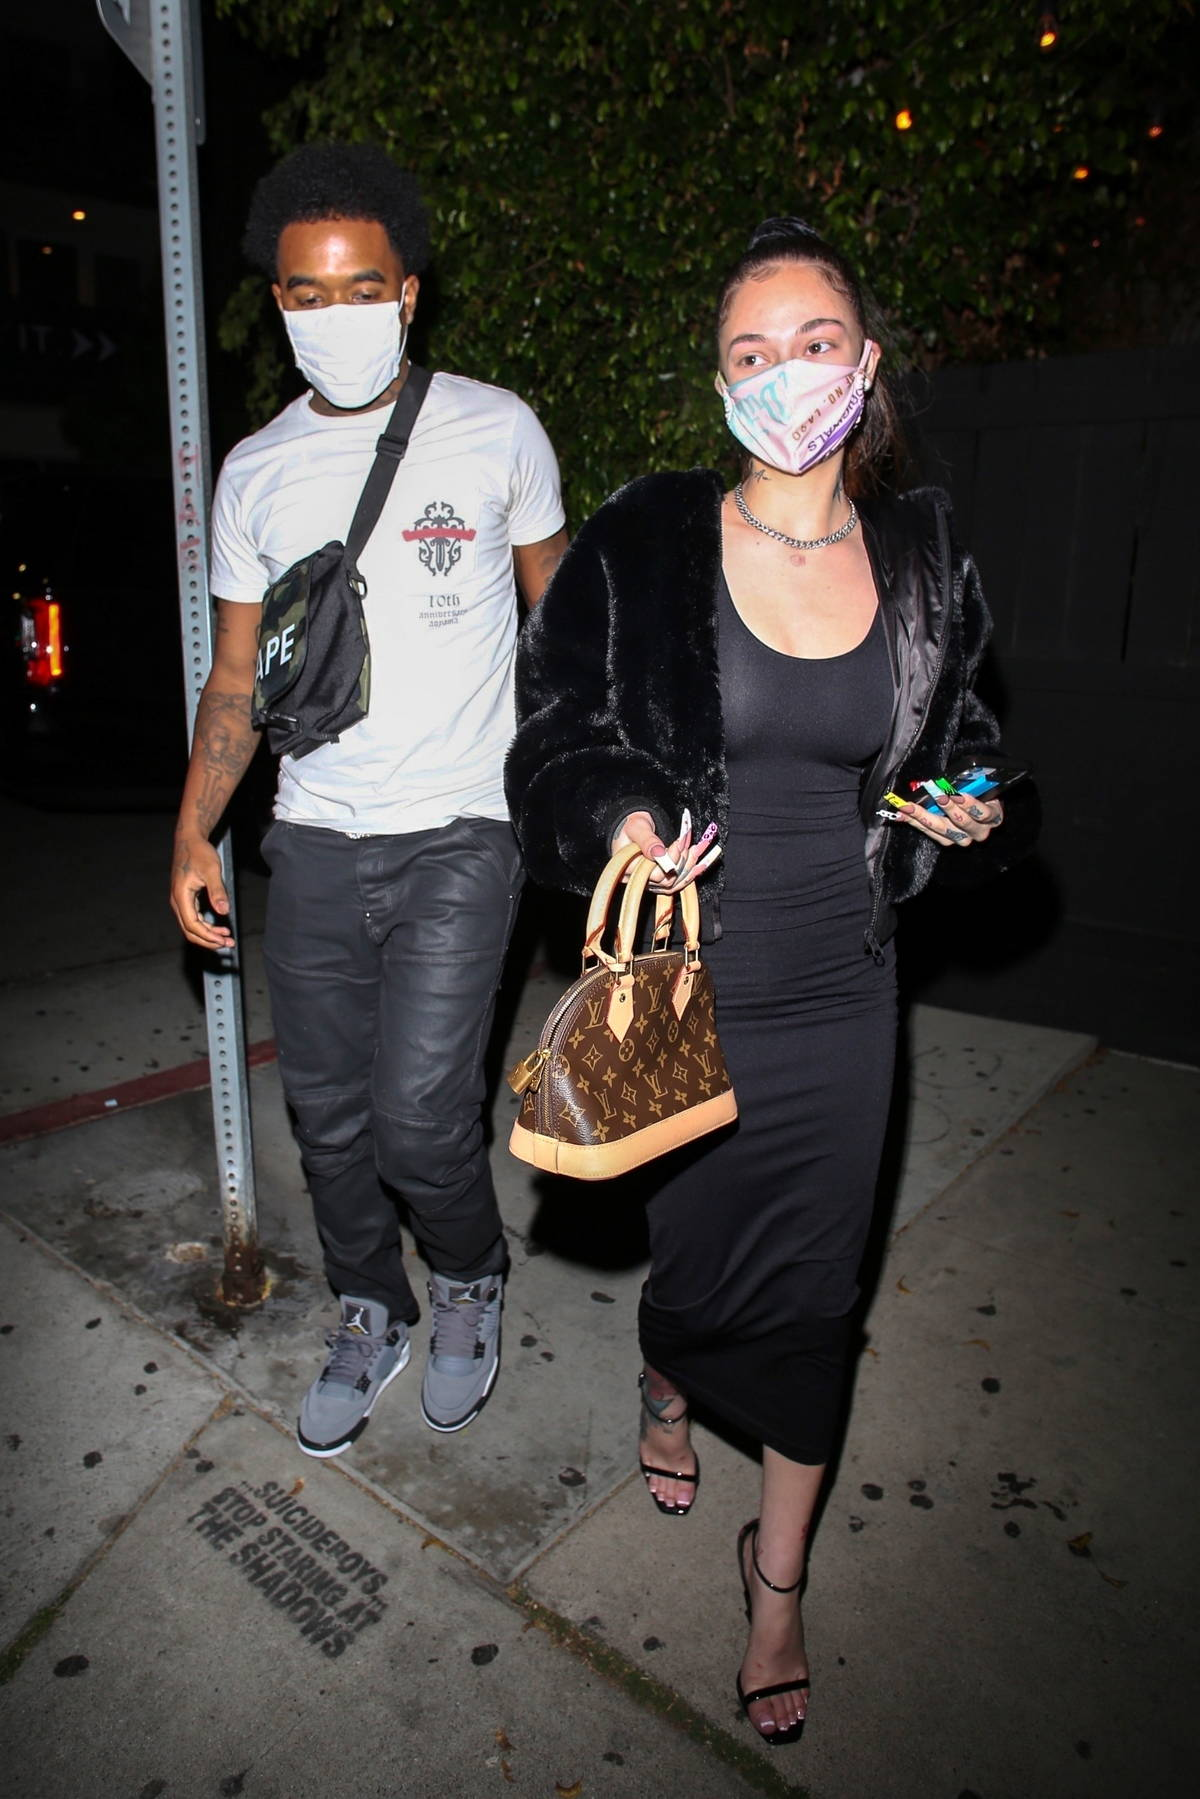 Danielle 'Bhad Bhabie' Bregoli arrives for dinner with her boyfriend in Los Angeles